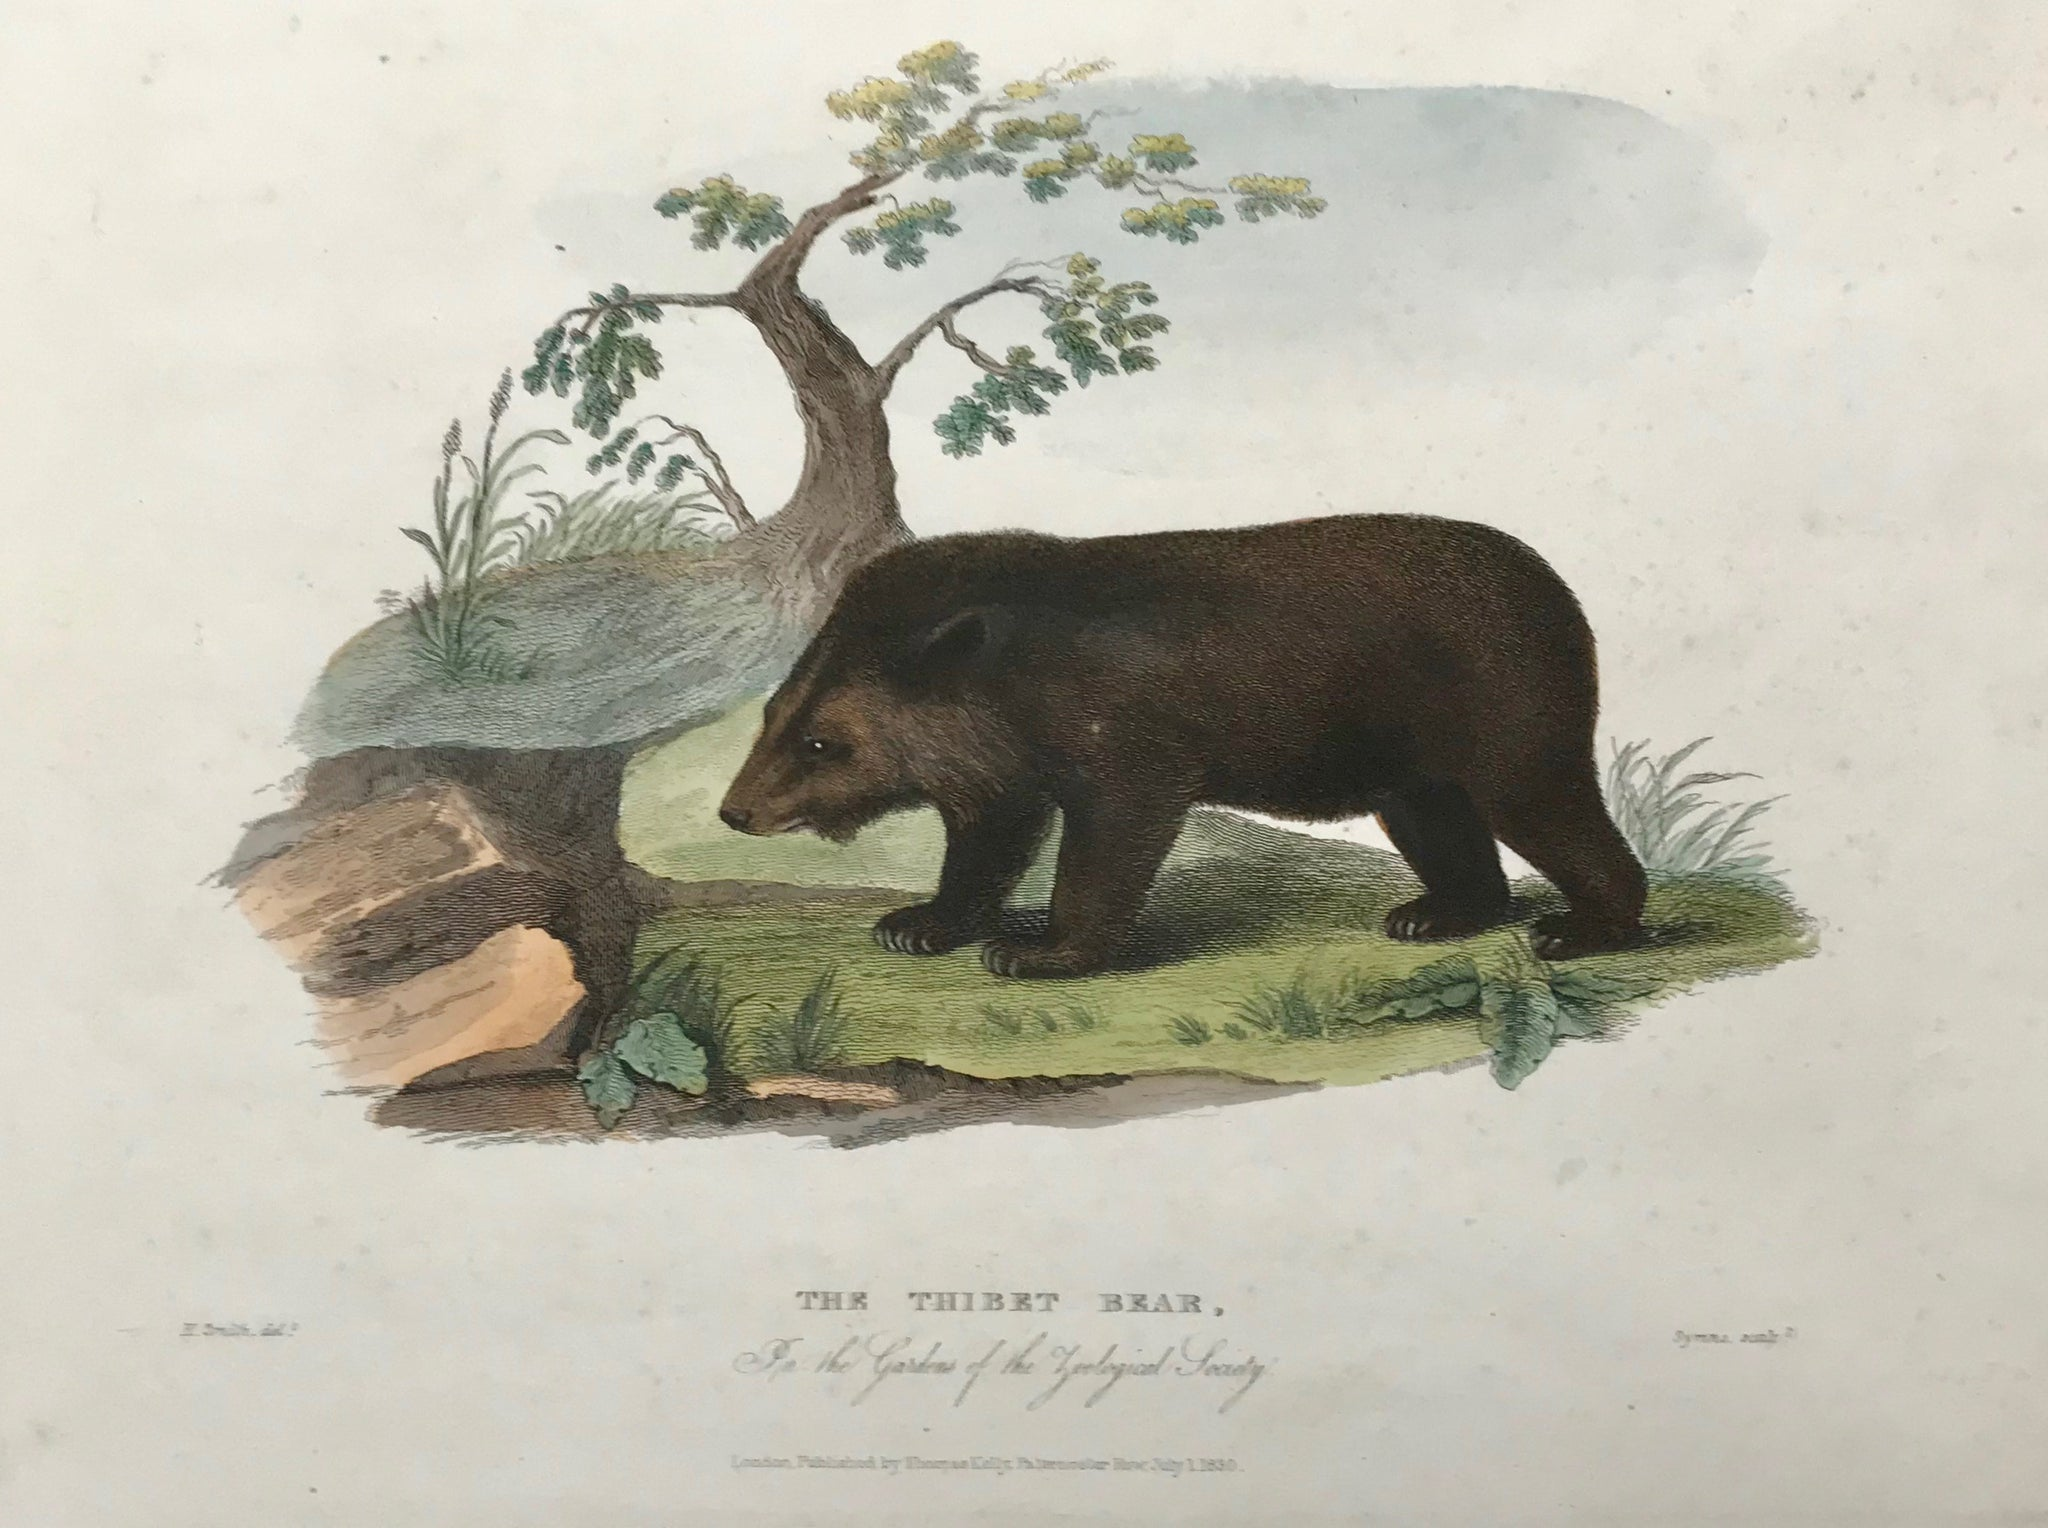 The Thibet Bear in the Gardens of the Zoological Society